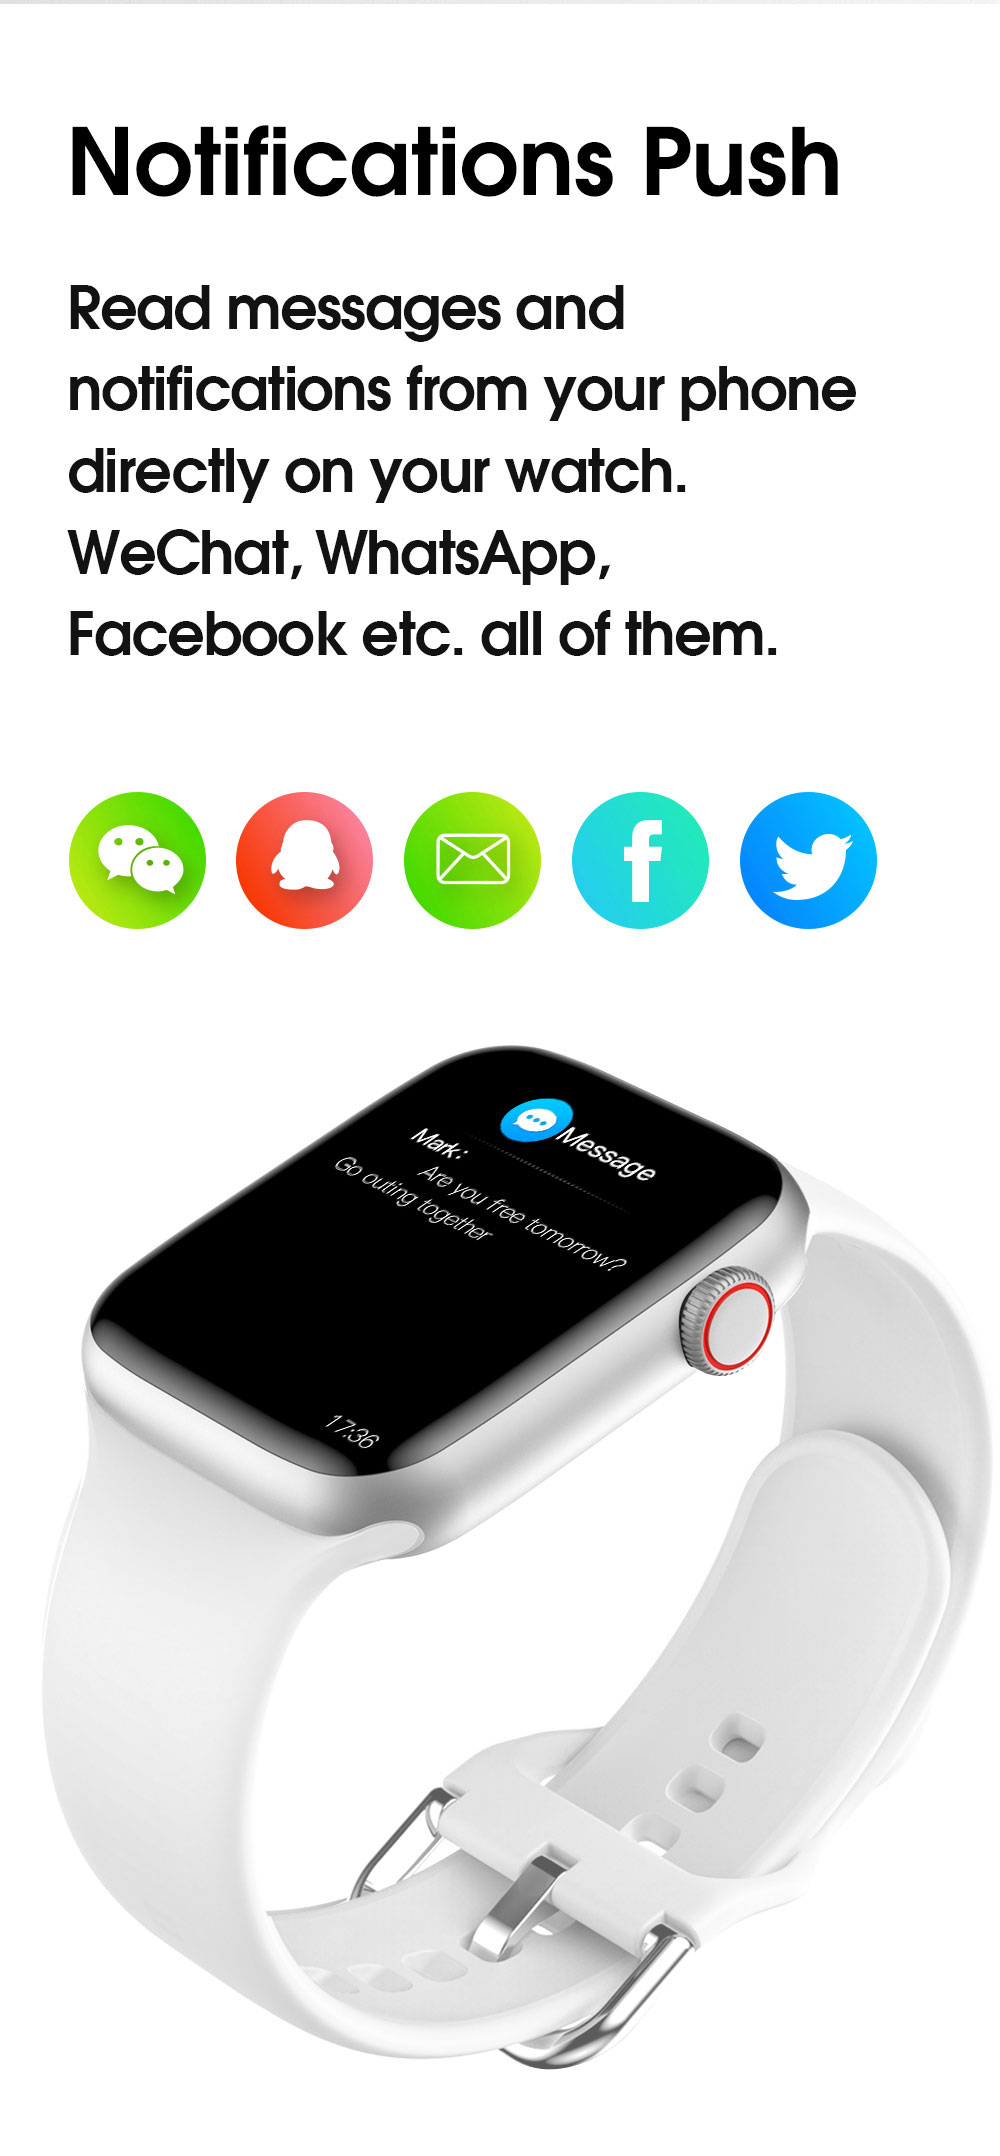 Hc8eb170b34f34897bd5516f79b3007e1t 2021 Original IWO W26 W46 Smart Watch Men/Women Heart Rate/Blood Pressure Monitor Clock Smartwatch For Android IOS PK HW22 HW16